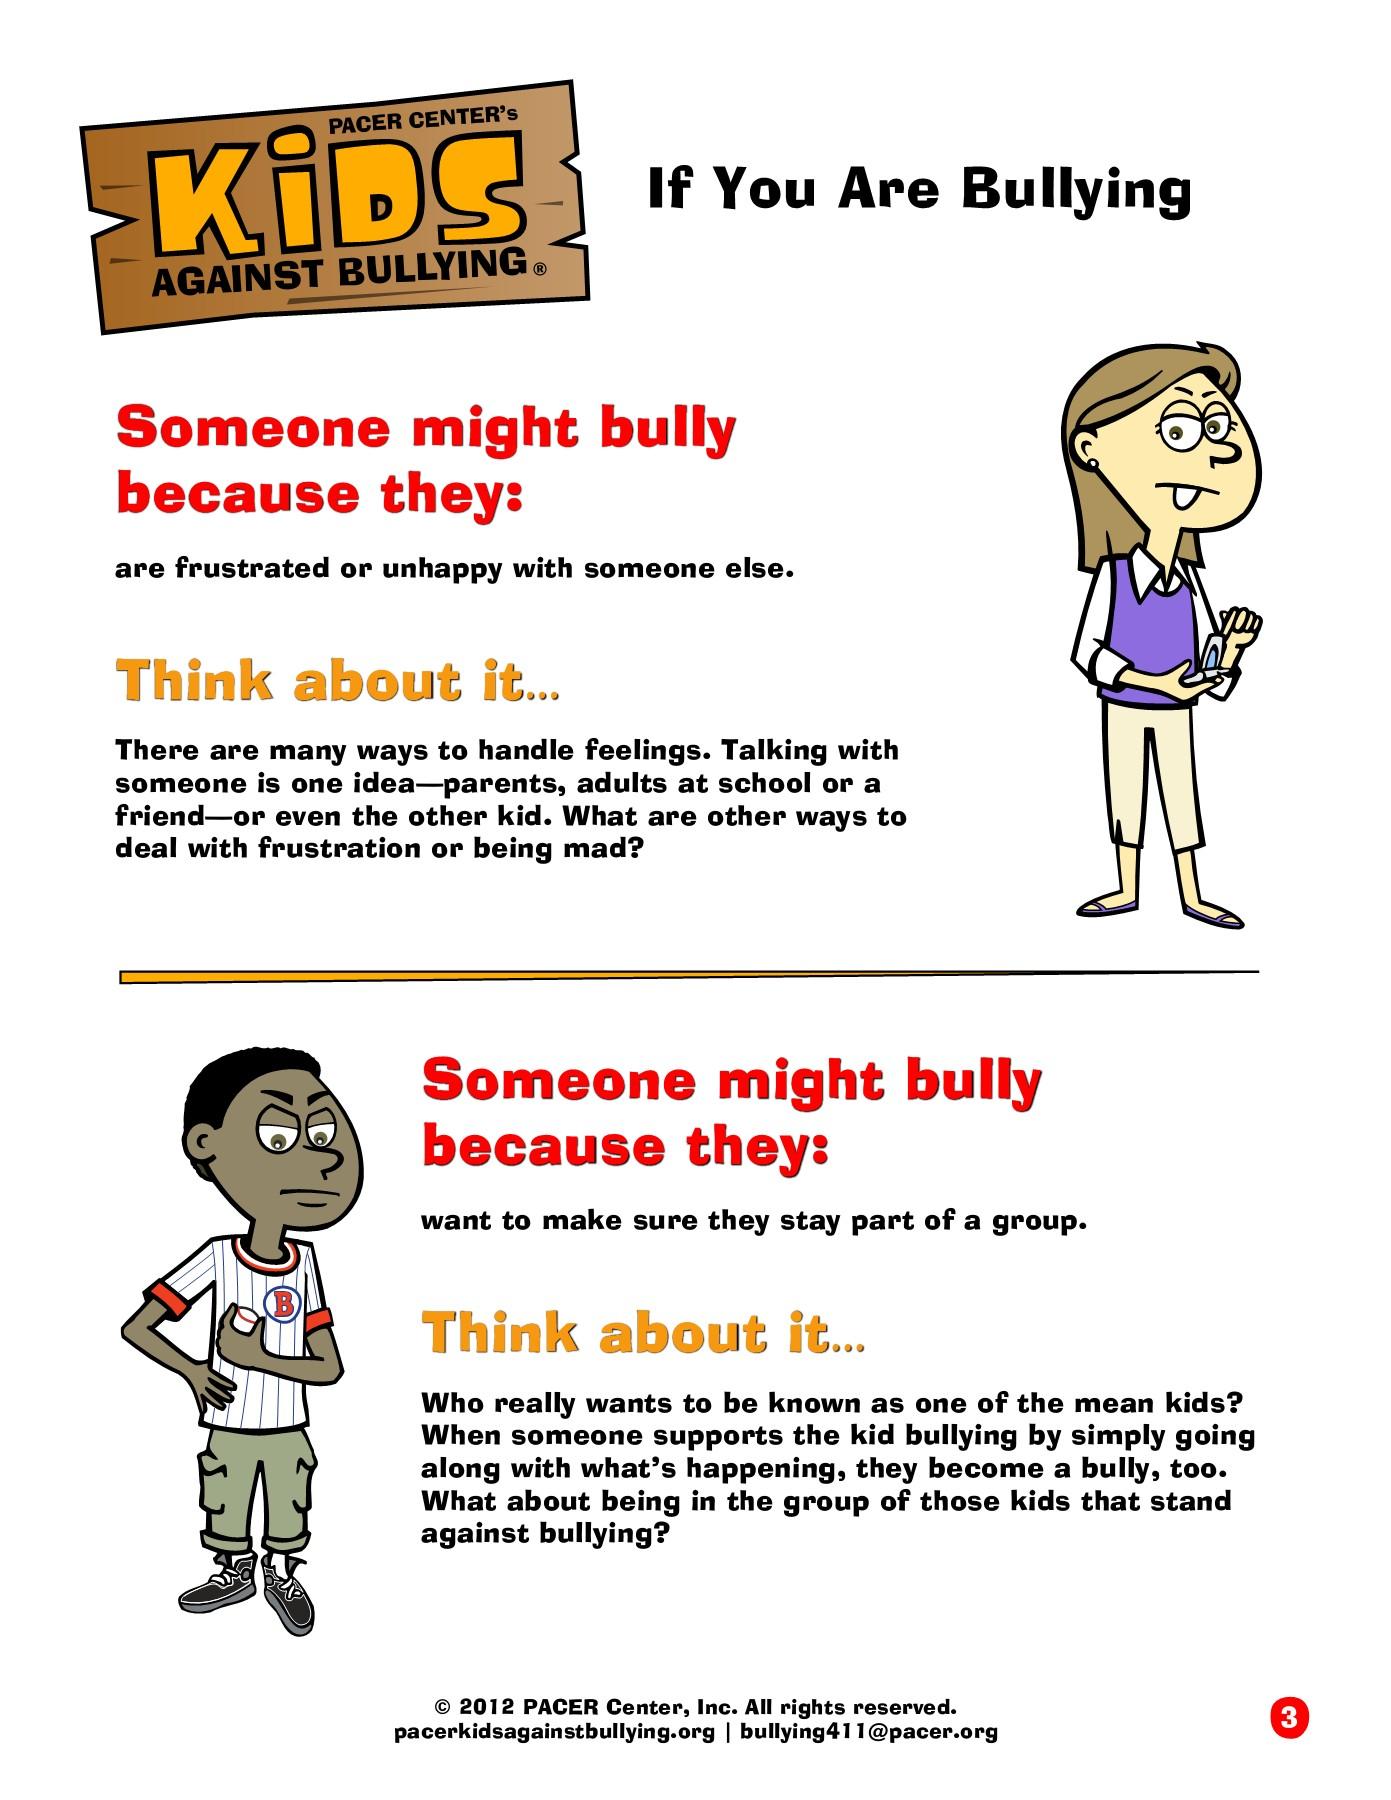 What Kids Think About Bullying And >> Acer Center S If You Are Bullying You Might Think Bullying Is Pages